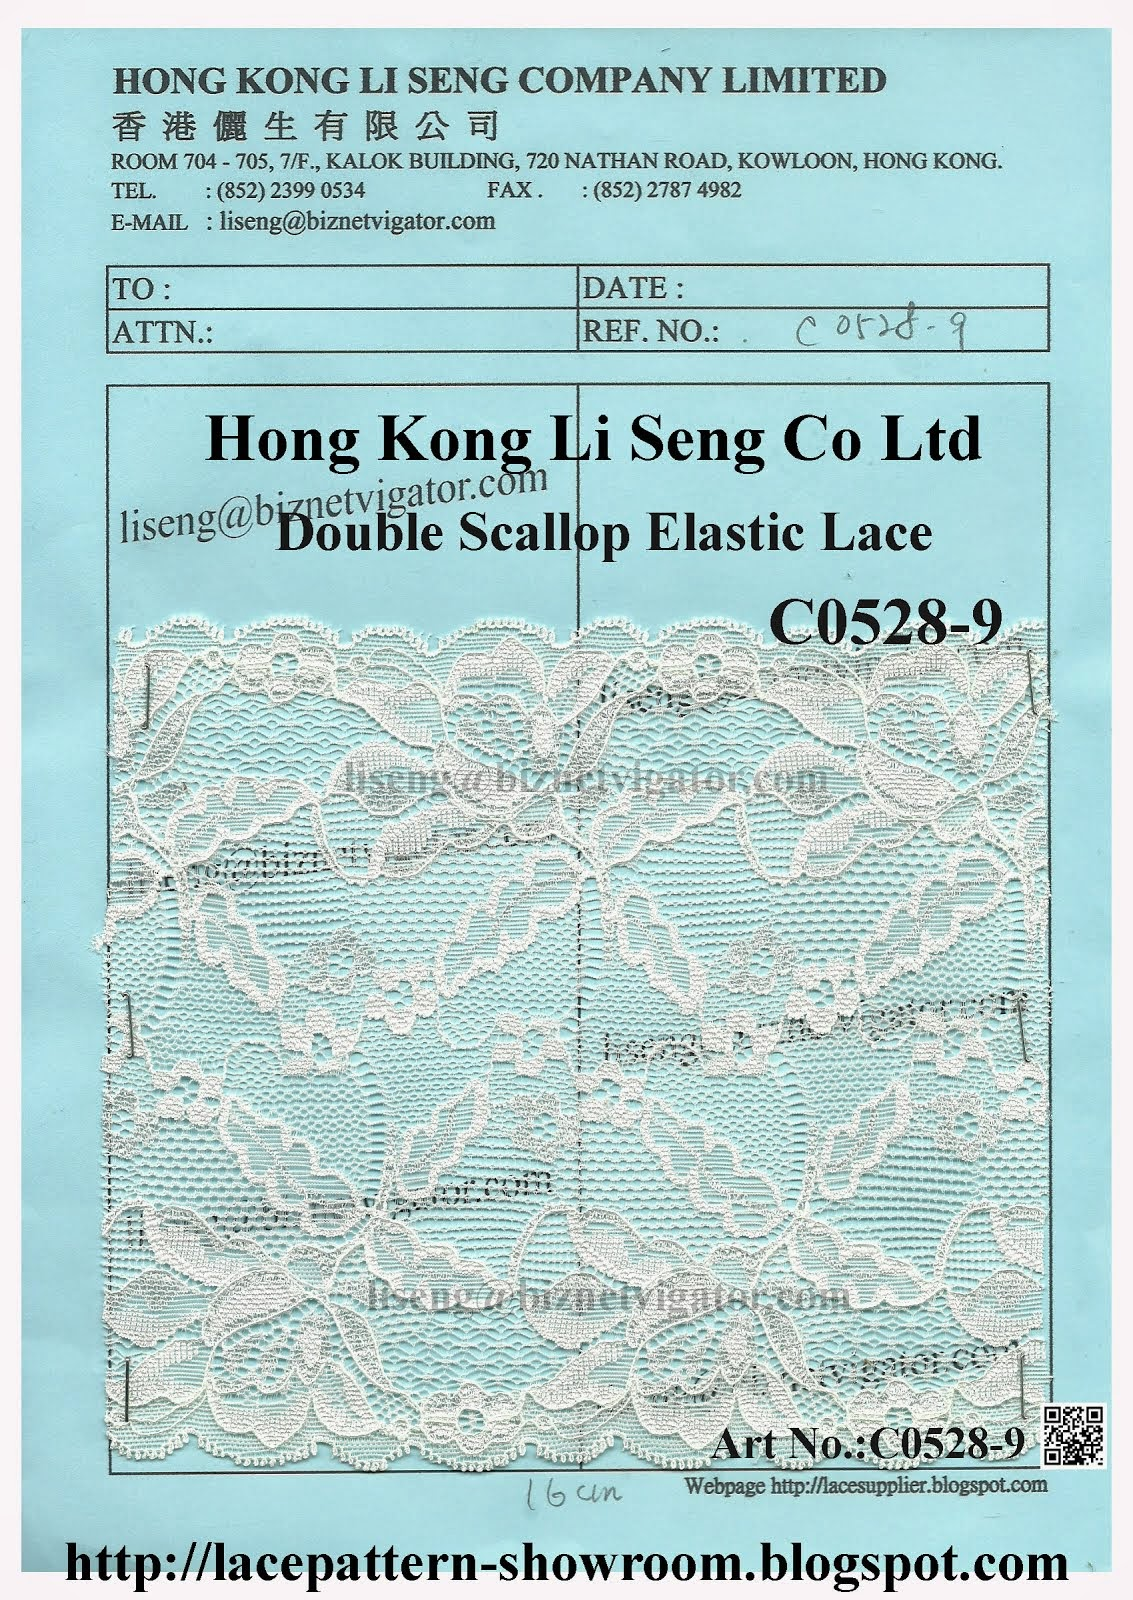 Double Scallop Elastic Lace Manufacturer Wholesaler and Supplier